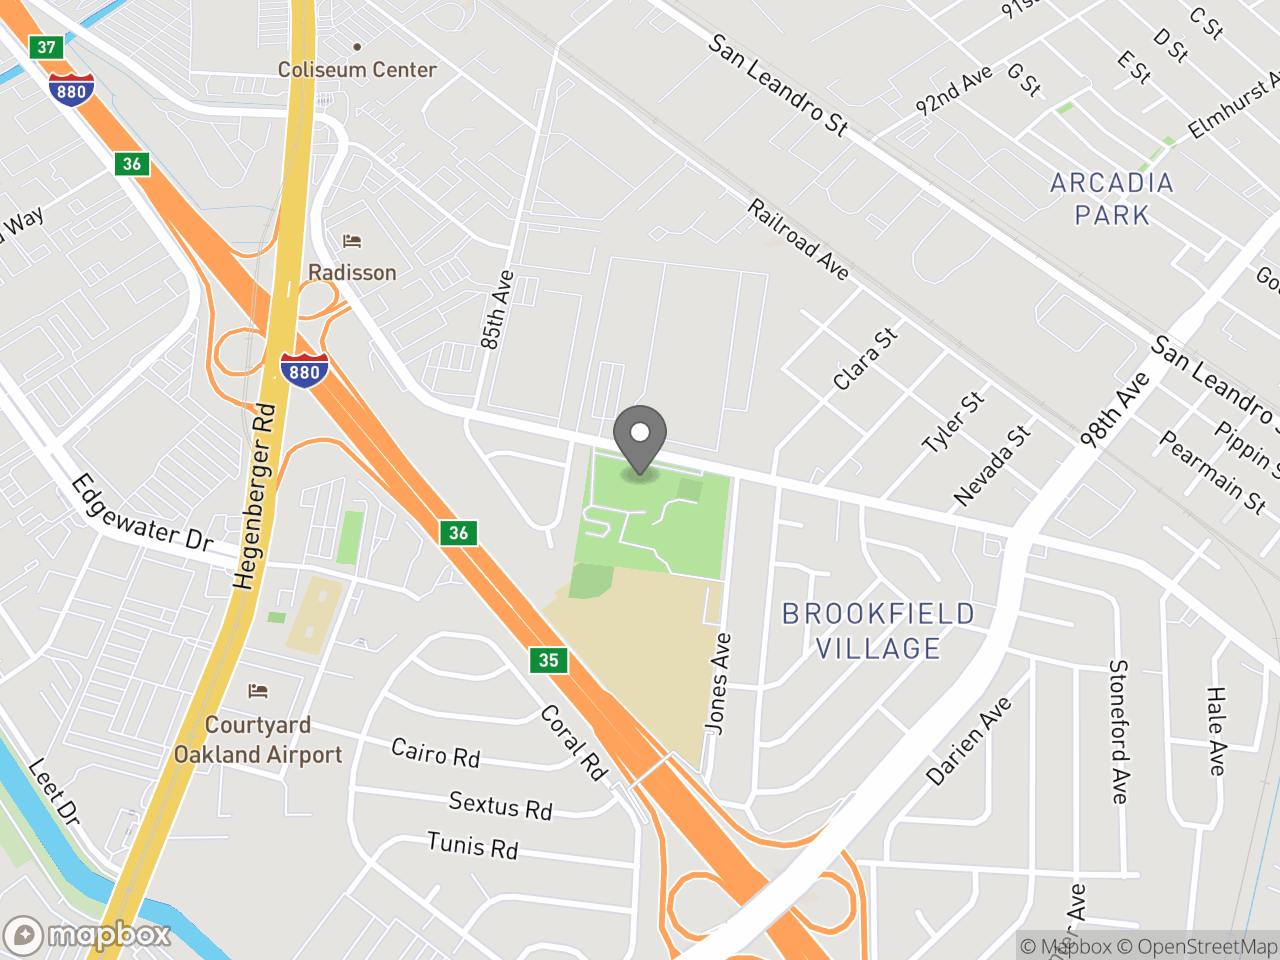 Map location for East Oakland Sports Center, located at 9161 Edes Ave in Oakland, CA 94603